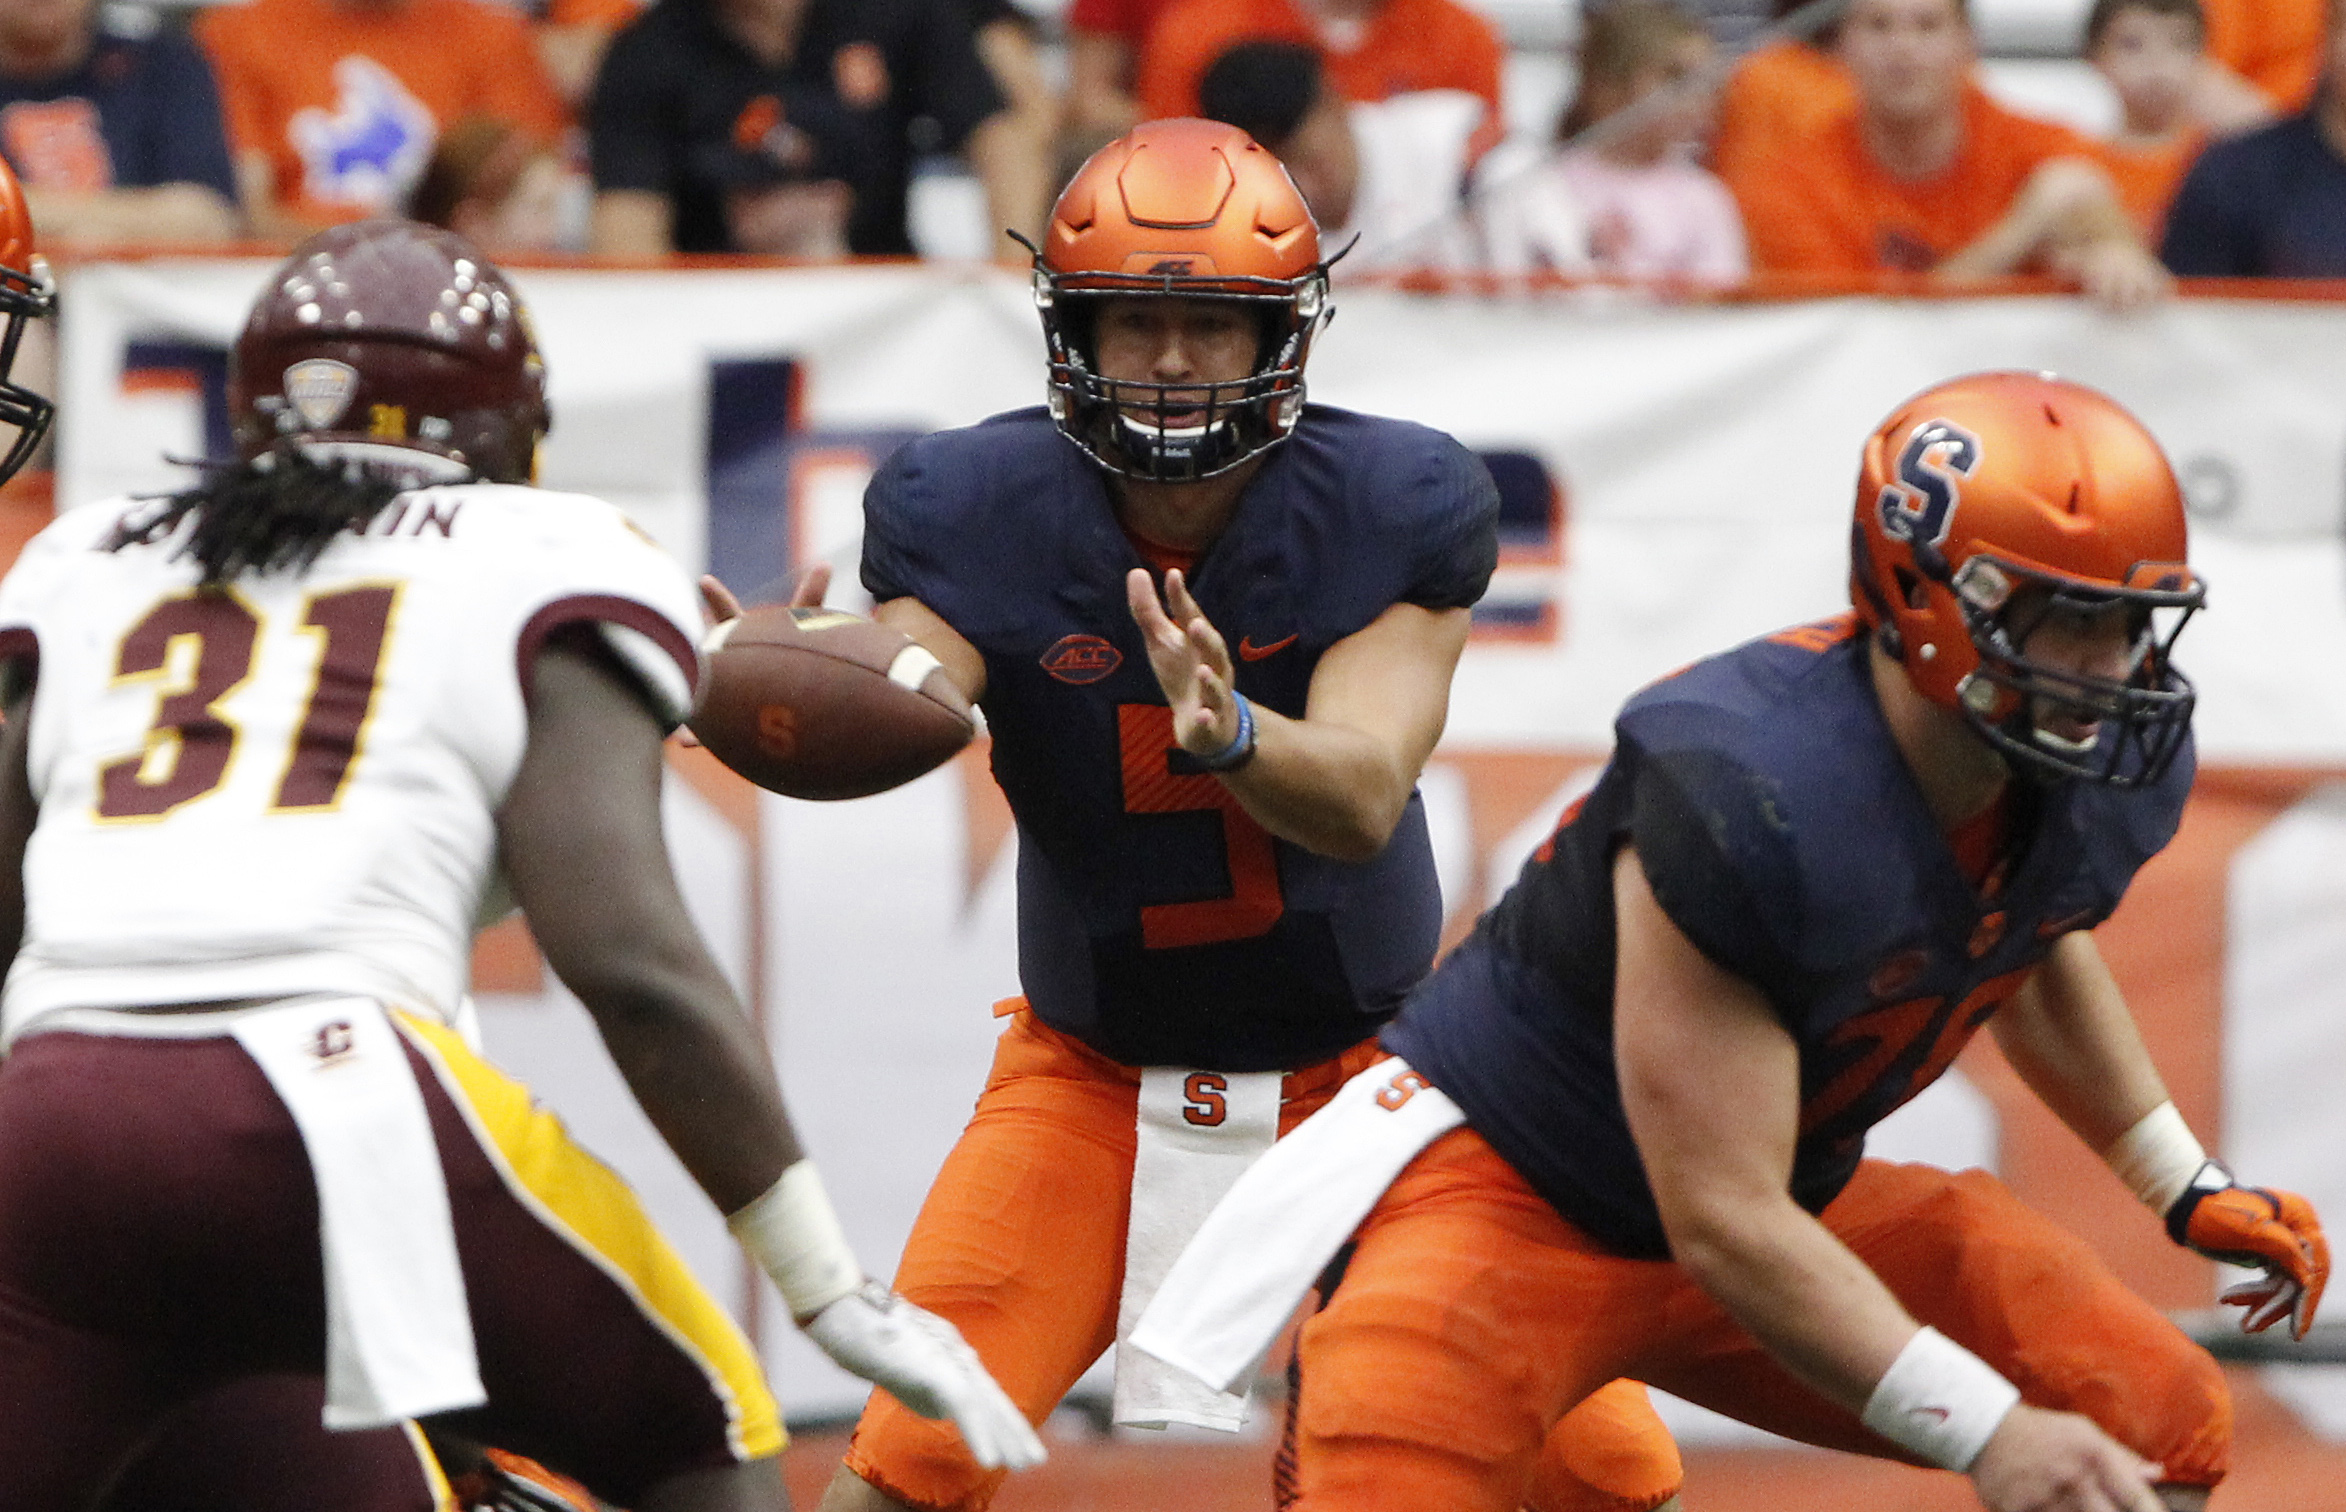 Syracuse's Austin Wilson, center, takes a snap in the second half of an NCAA college football game against Central Michigan in Syracuse, N.Y., Saturday, Sept. 19, 2015. Syracuse won 30  27. (AP Photo/Nick Lisi)